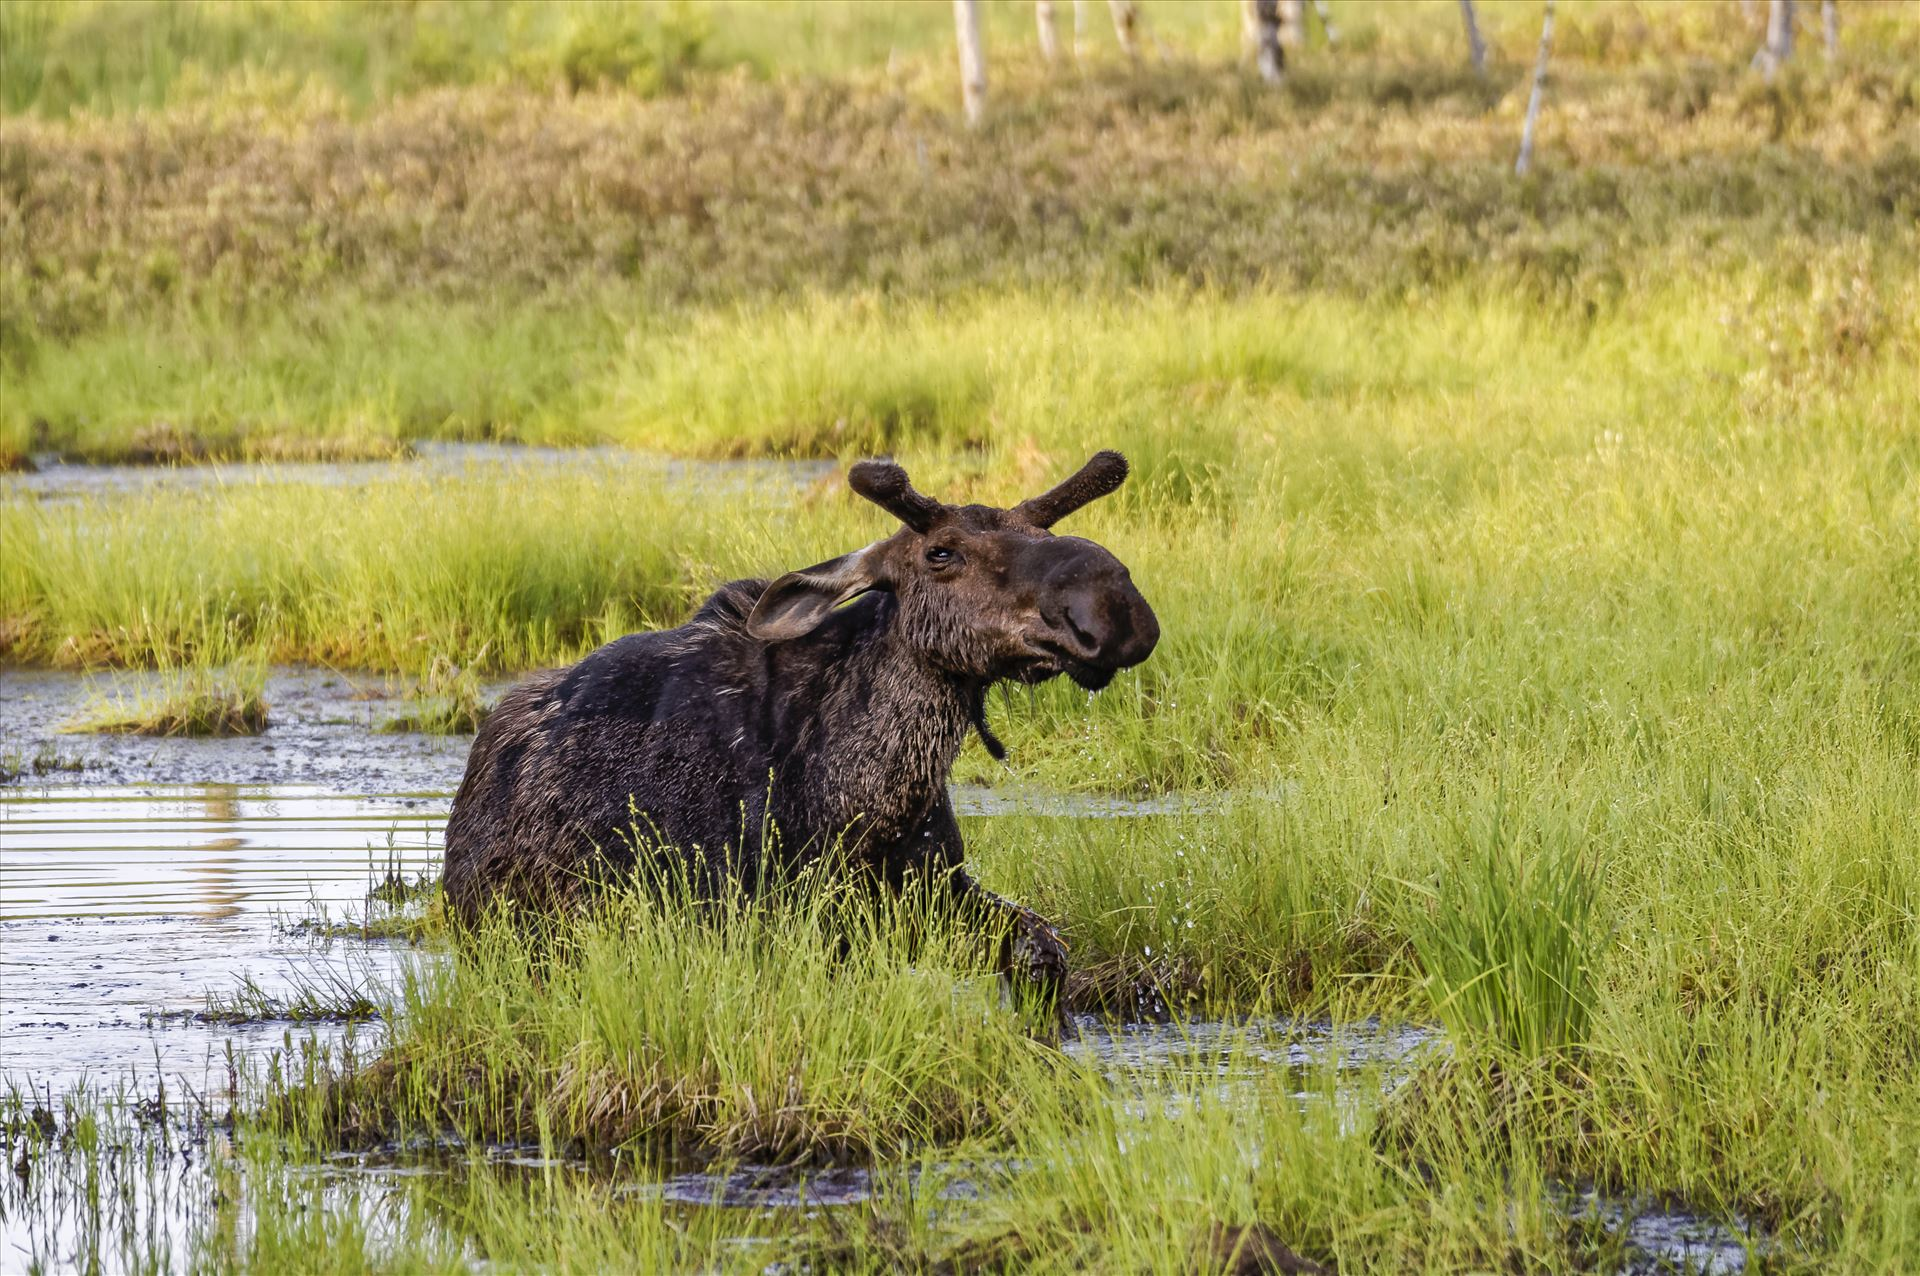 Moose in the Bog - Small Bull Moose coming out of a bog after getting tired of me photographing him by Buckmaster